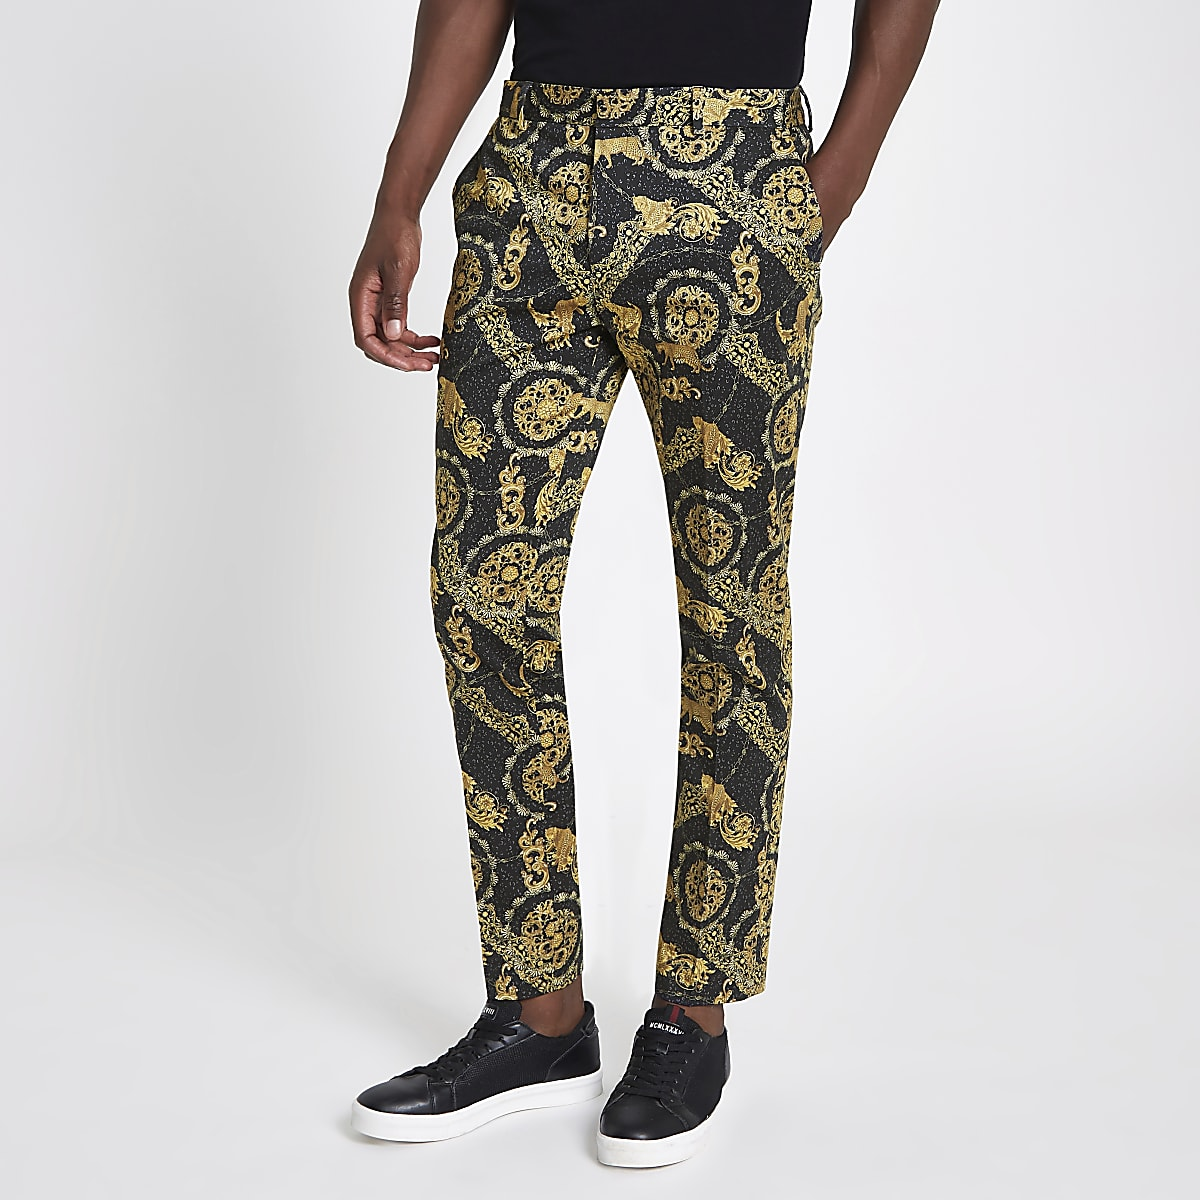 Black leopard printed skinny smart trousers